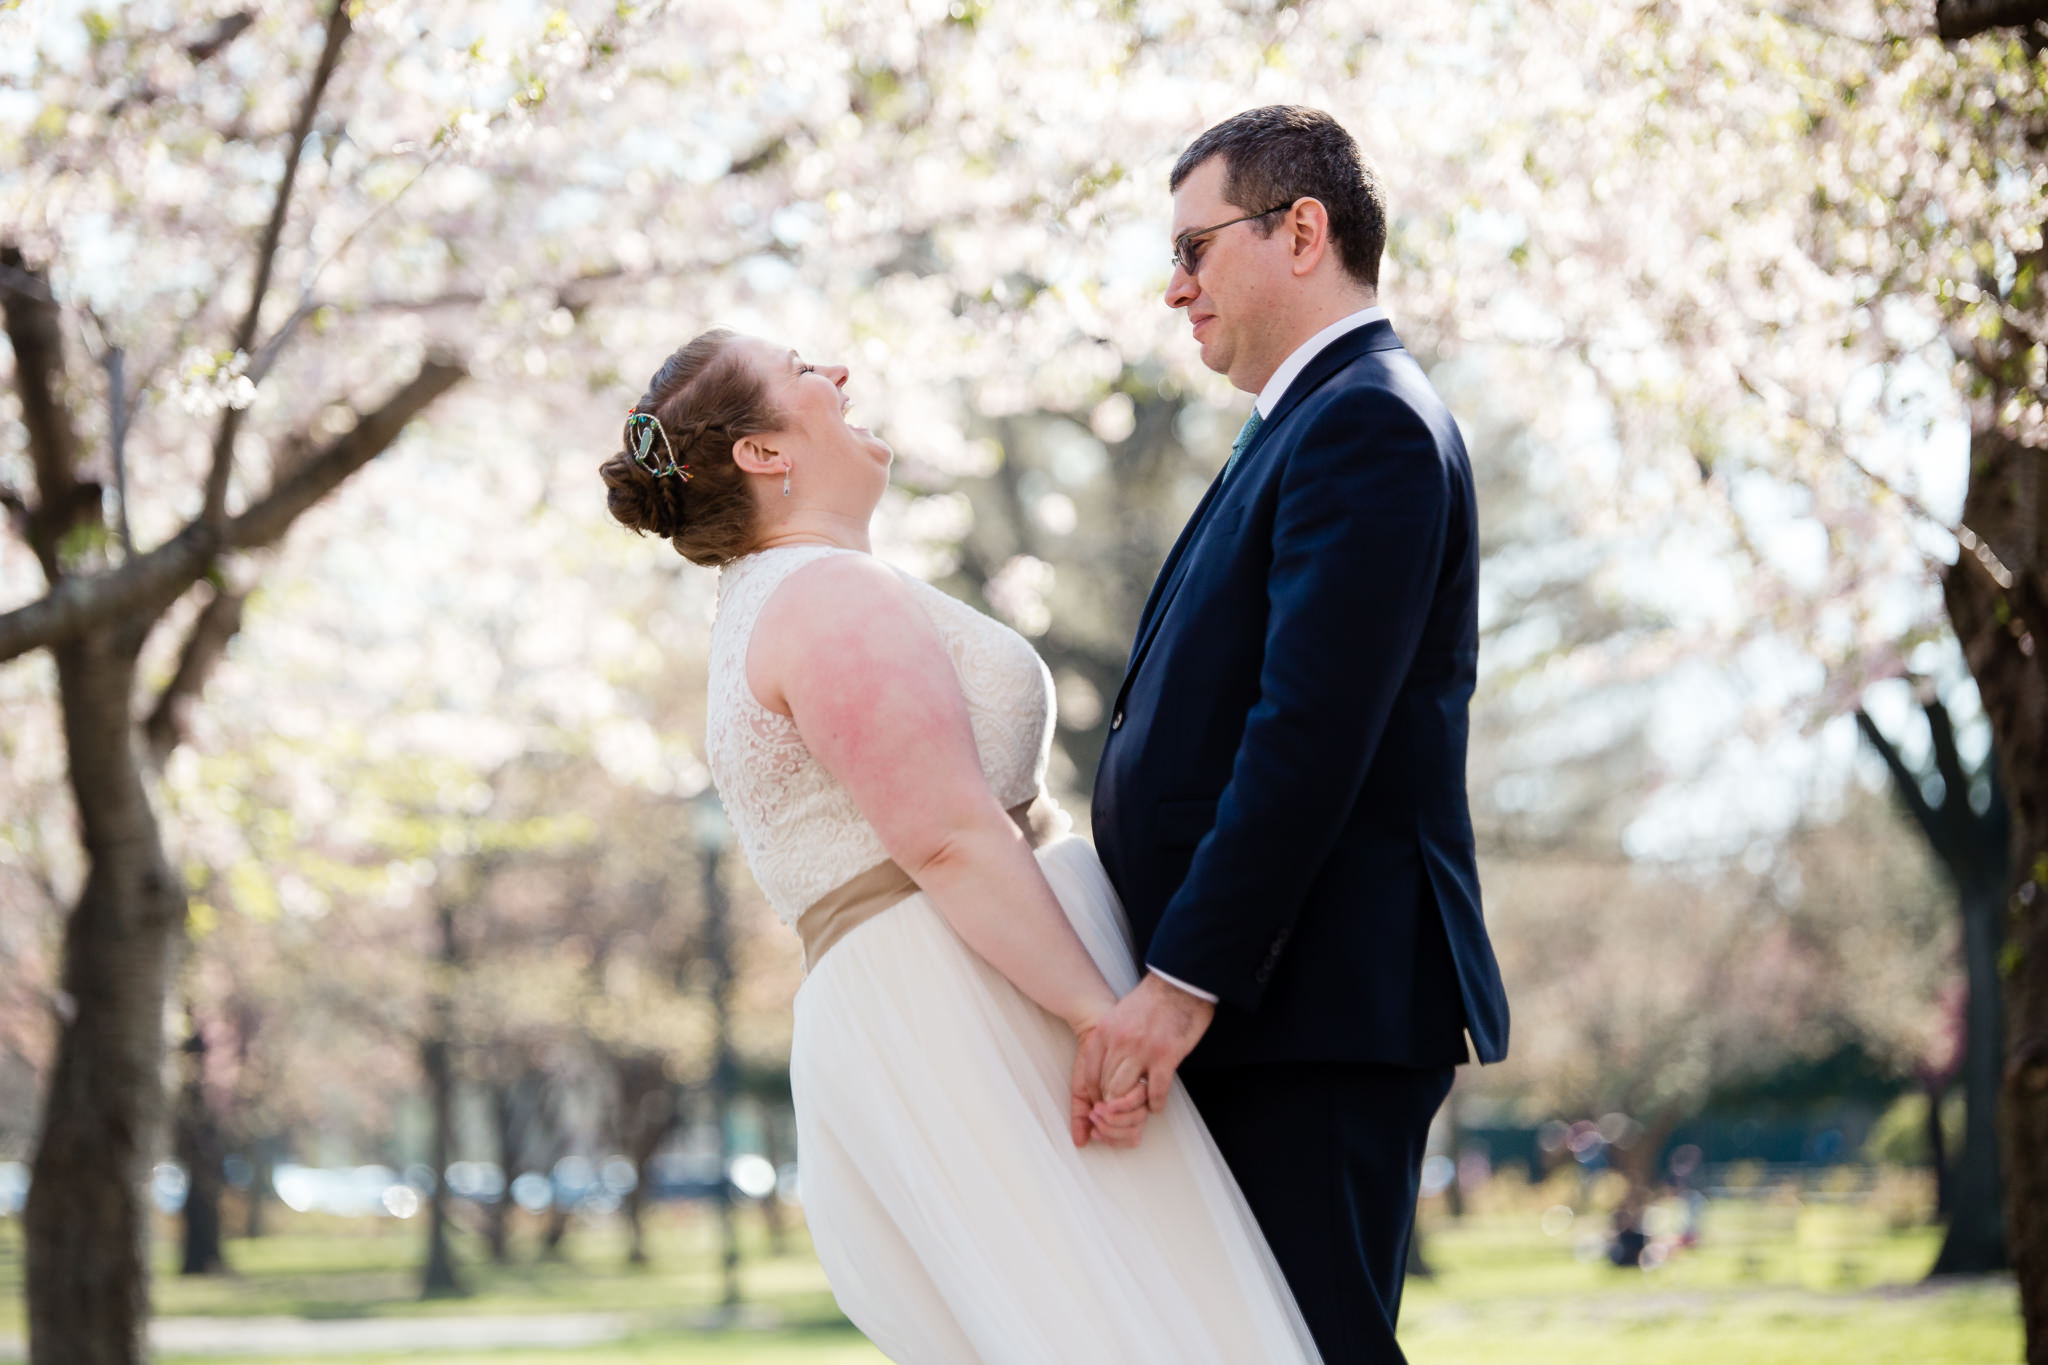 Flushing Meadows Corona Park Wedding Queens New York Bride and Groom Laughing in the Cherry Blossoms